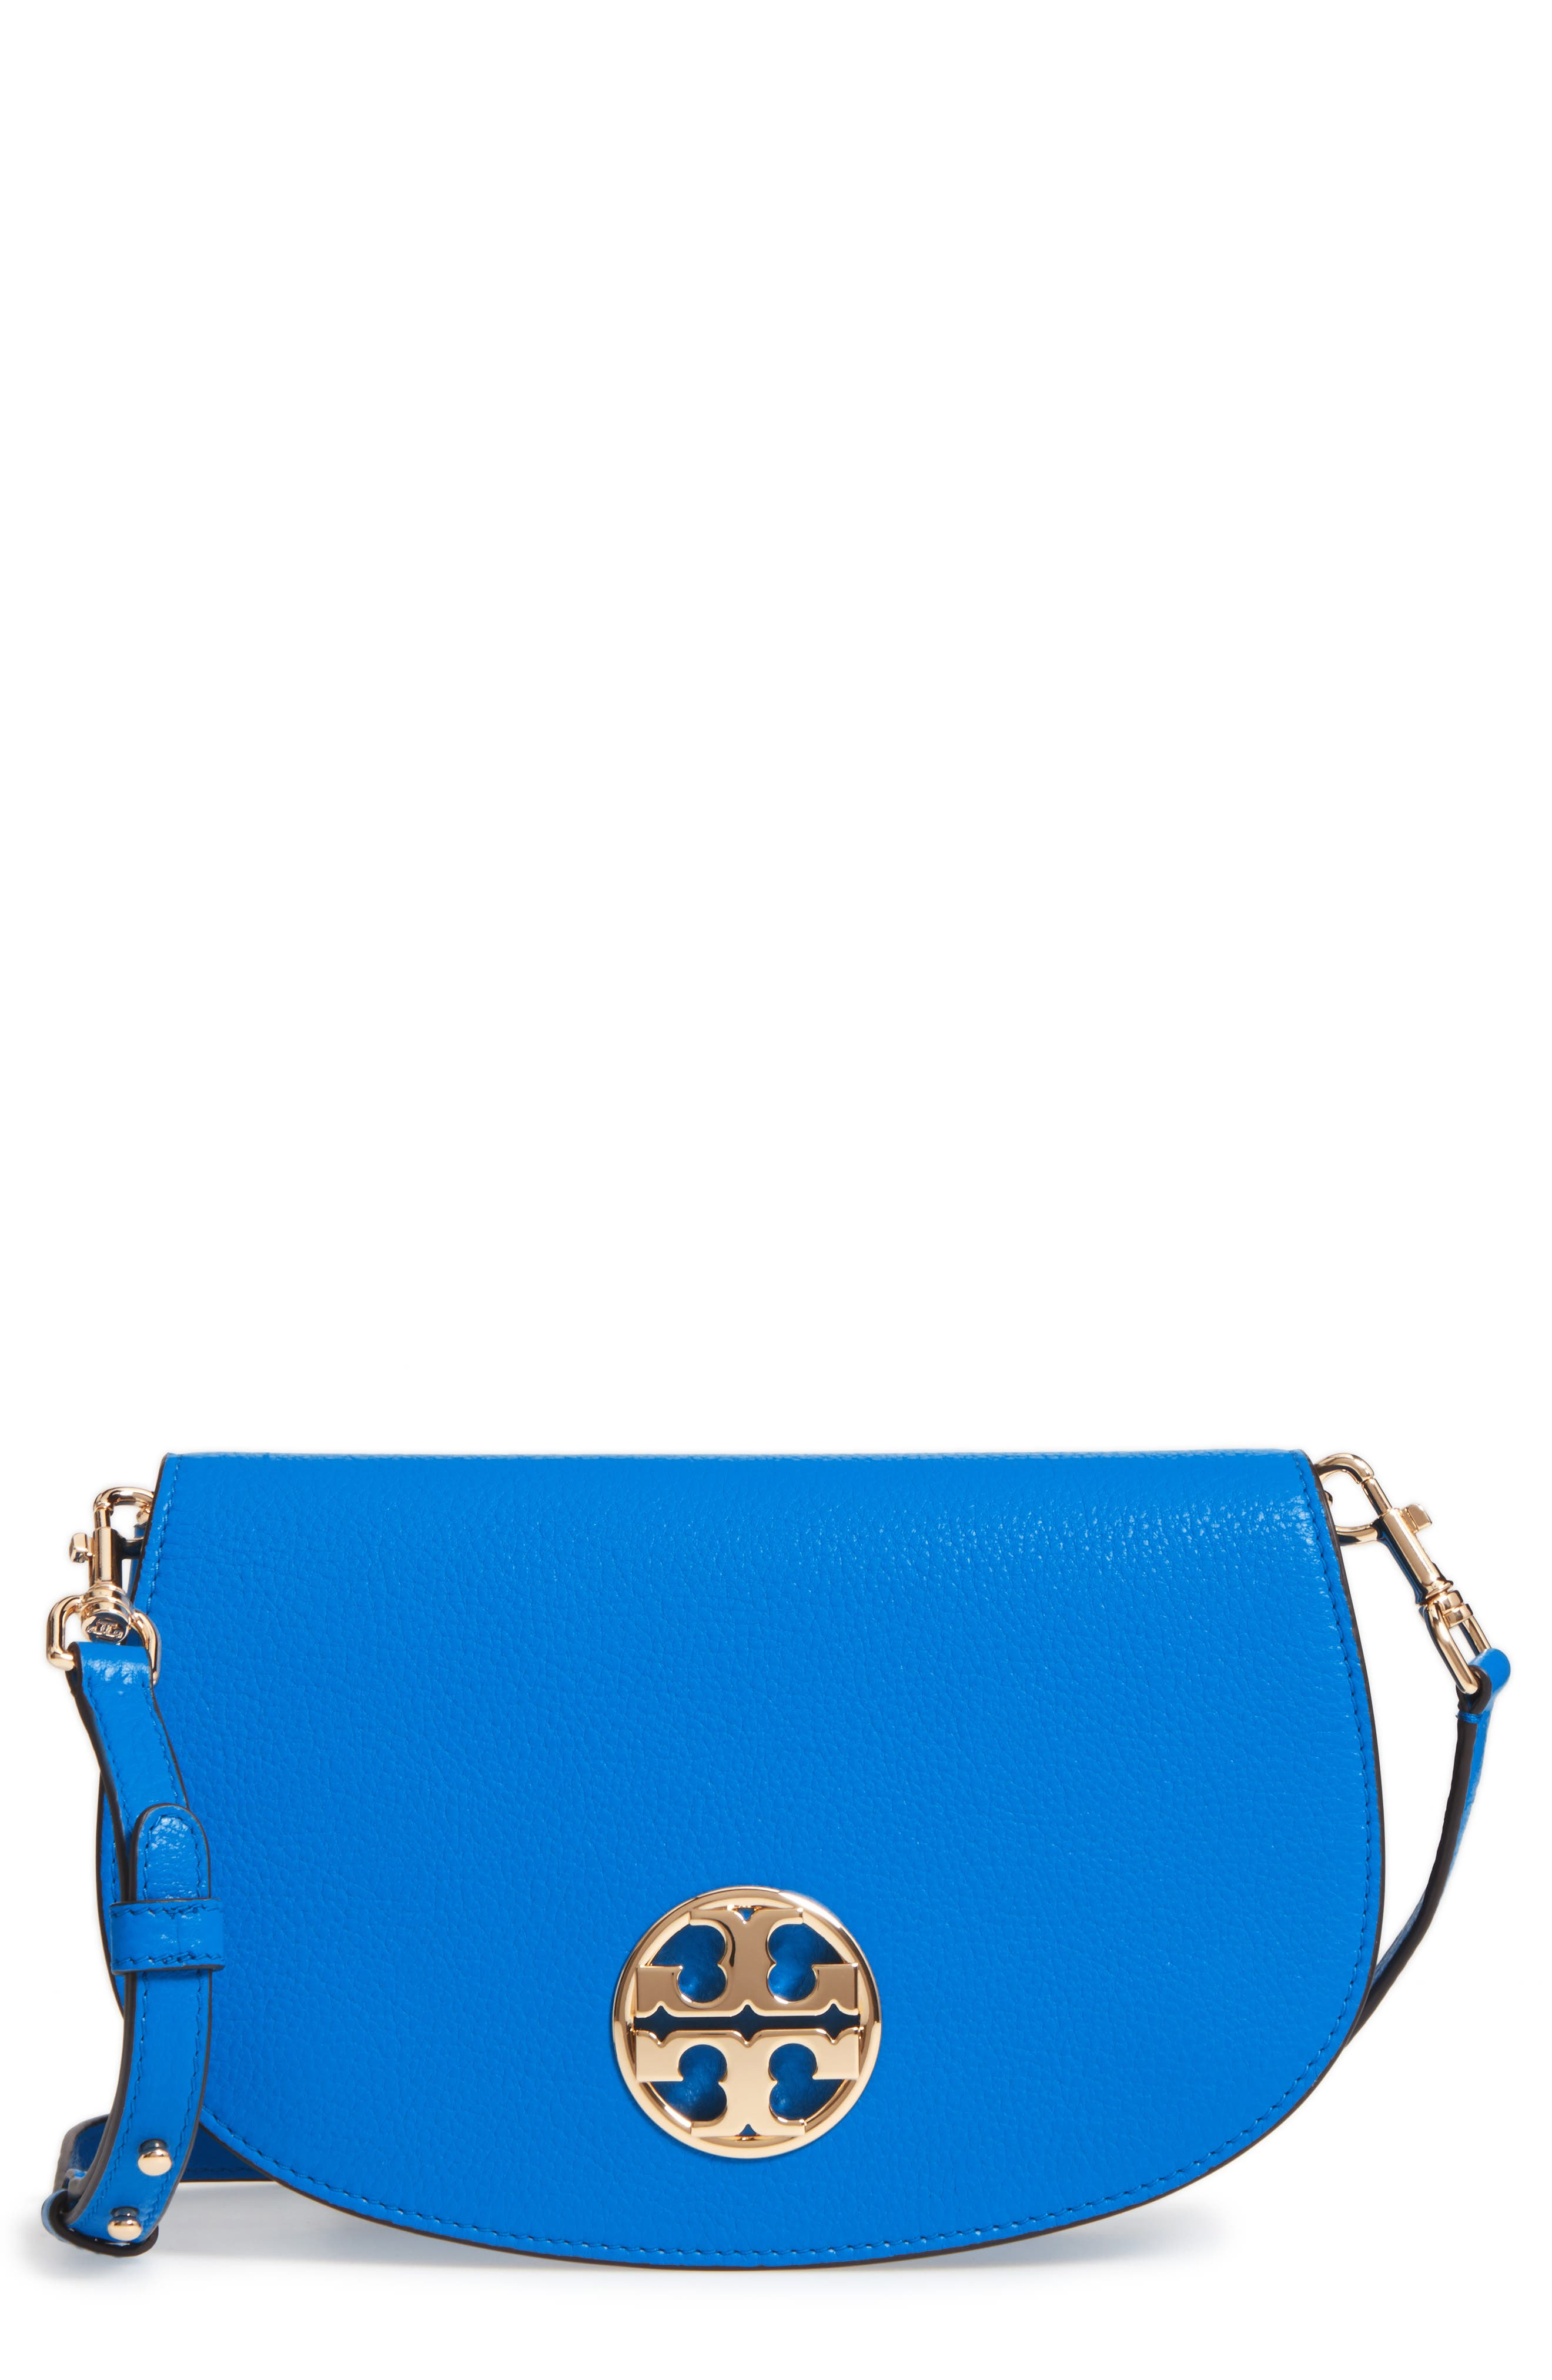 Main Image - Tory Burch Jamie Convertible Leather Clutch